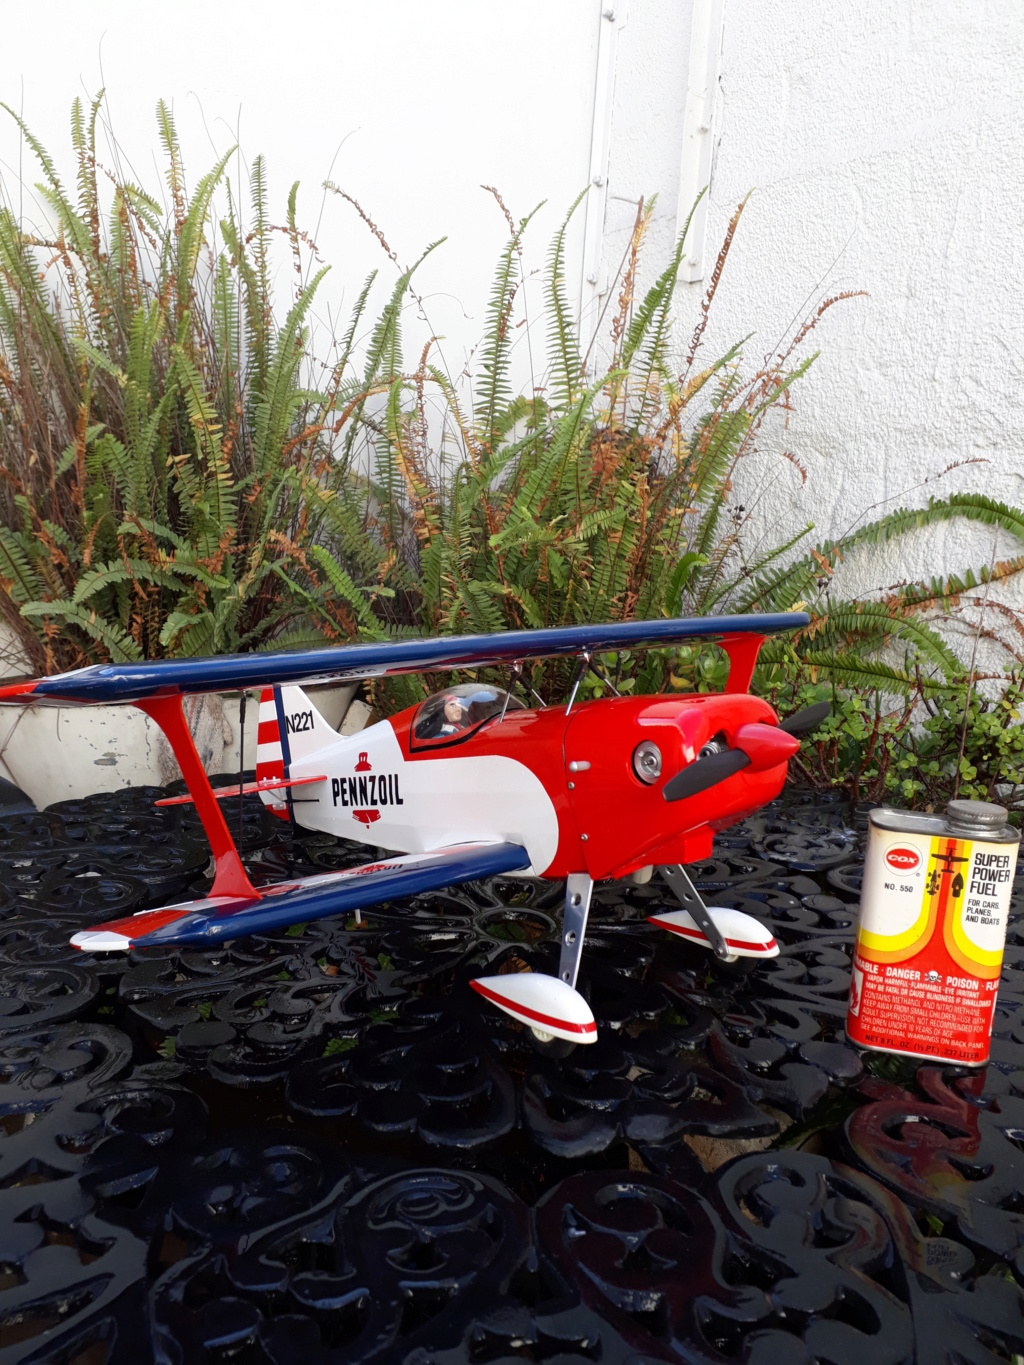 New Flight: Pitts -Skelton Aerobatic model  (page 9) - Page 6 20200610